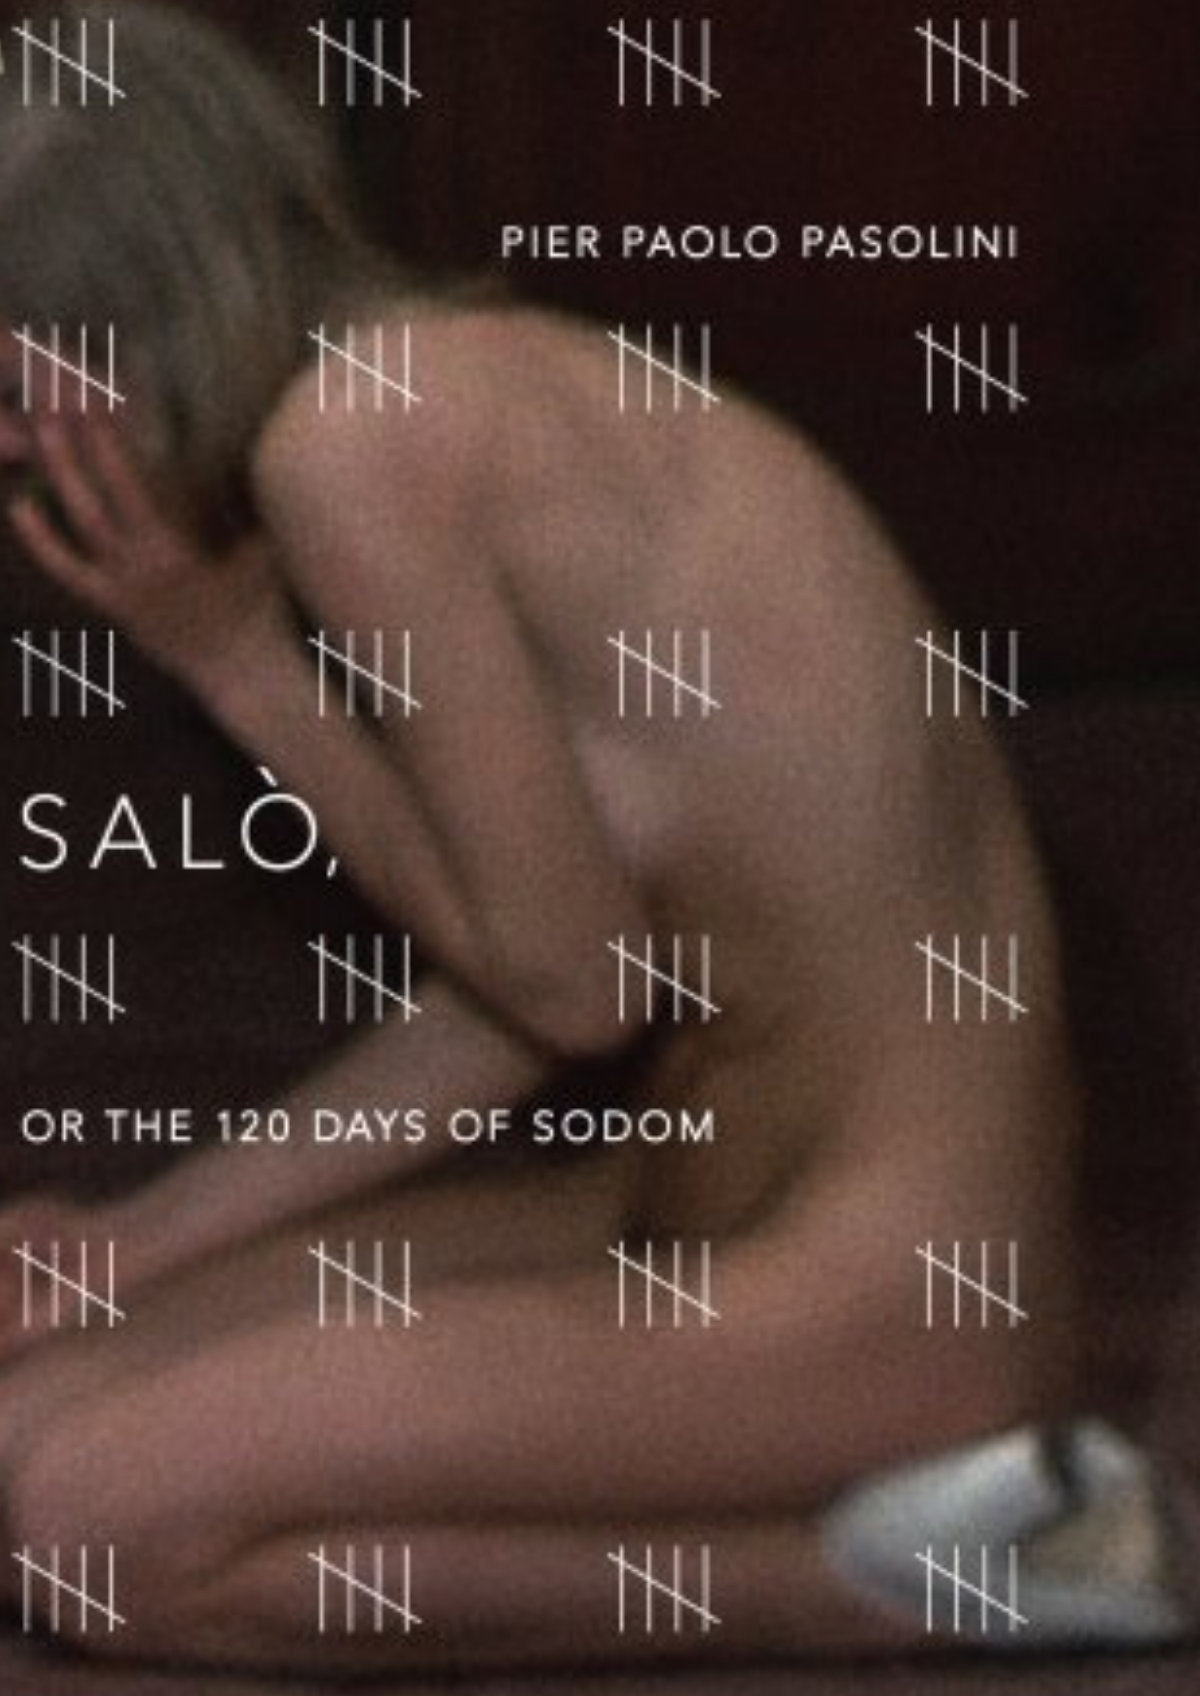 ' Salò, or the 120 Days of Sodom' movie poster